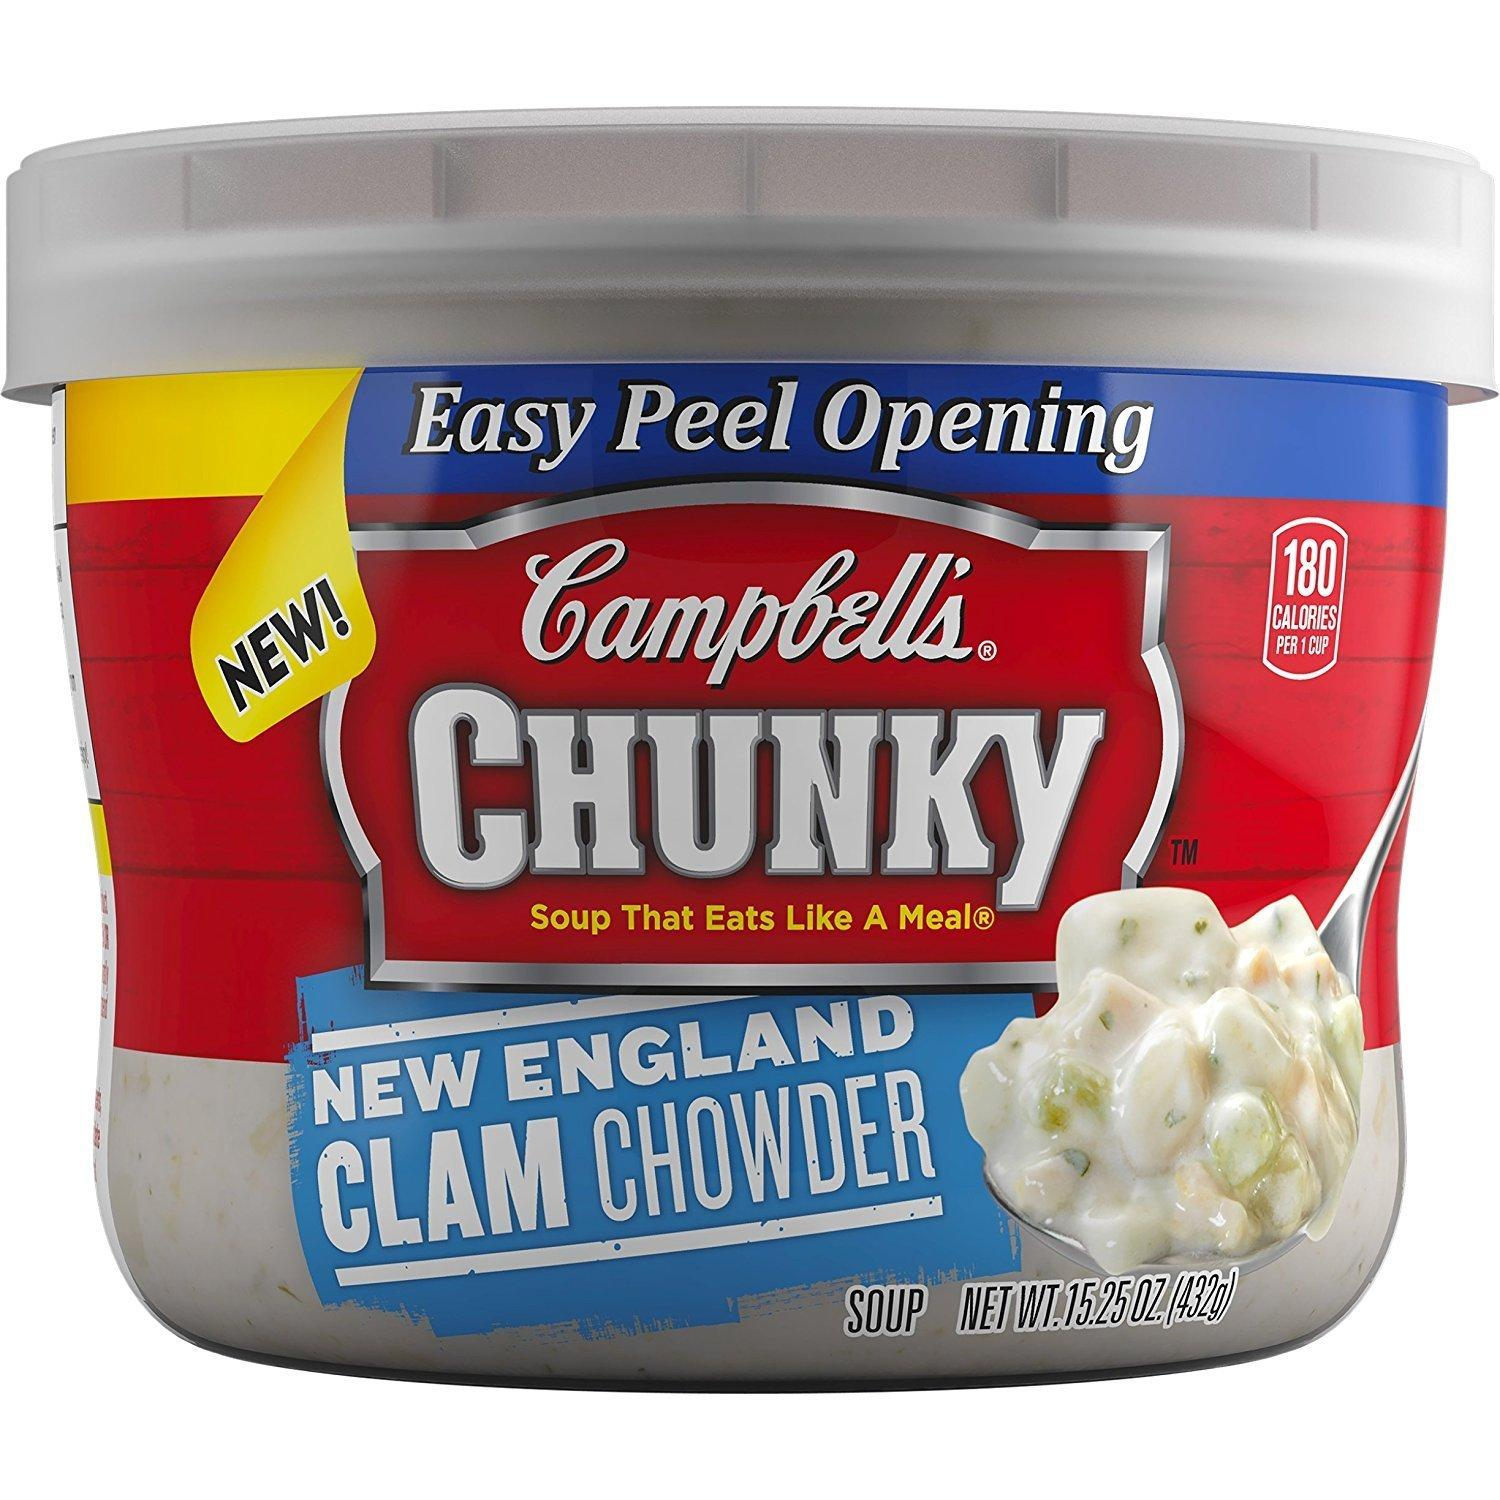 8 Campbells Chunky Soup for $8.37 Shipped